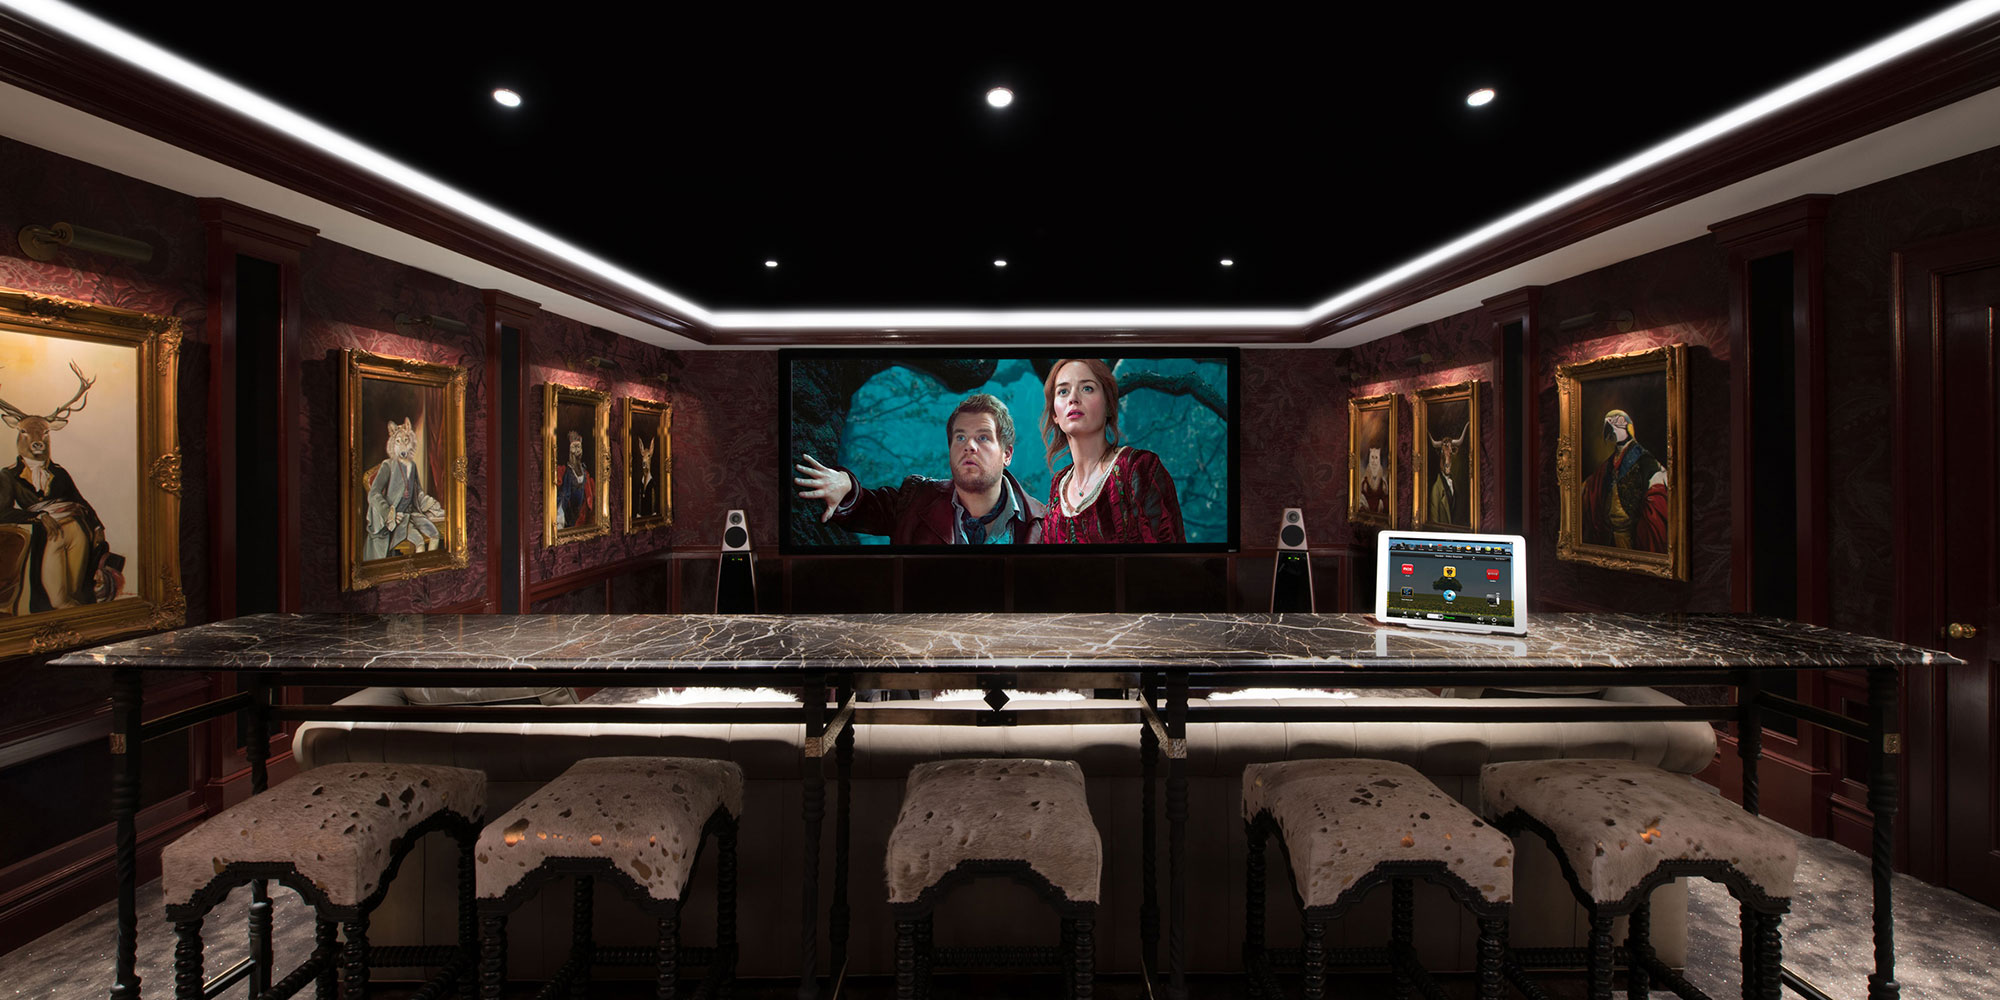 Theater, projection system, movie screen, speakers, surround sound, freestanding, iPad, video screen, LED lighting, alcove,